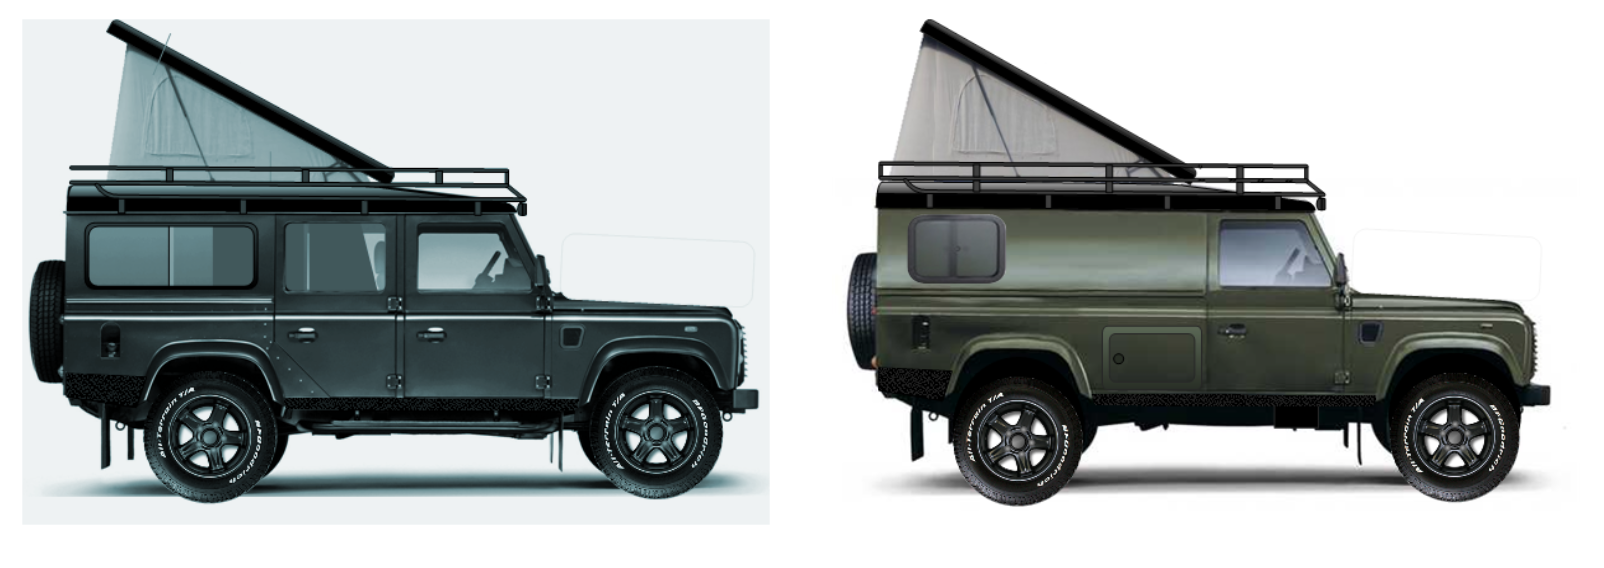 Land rover camper - the twins